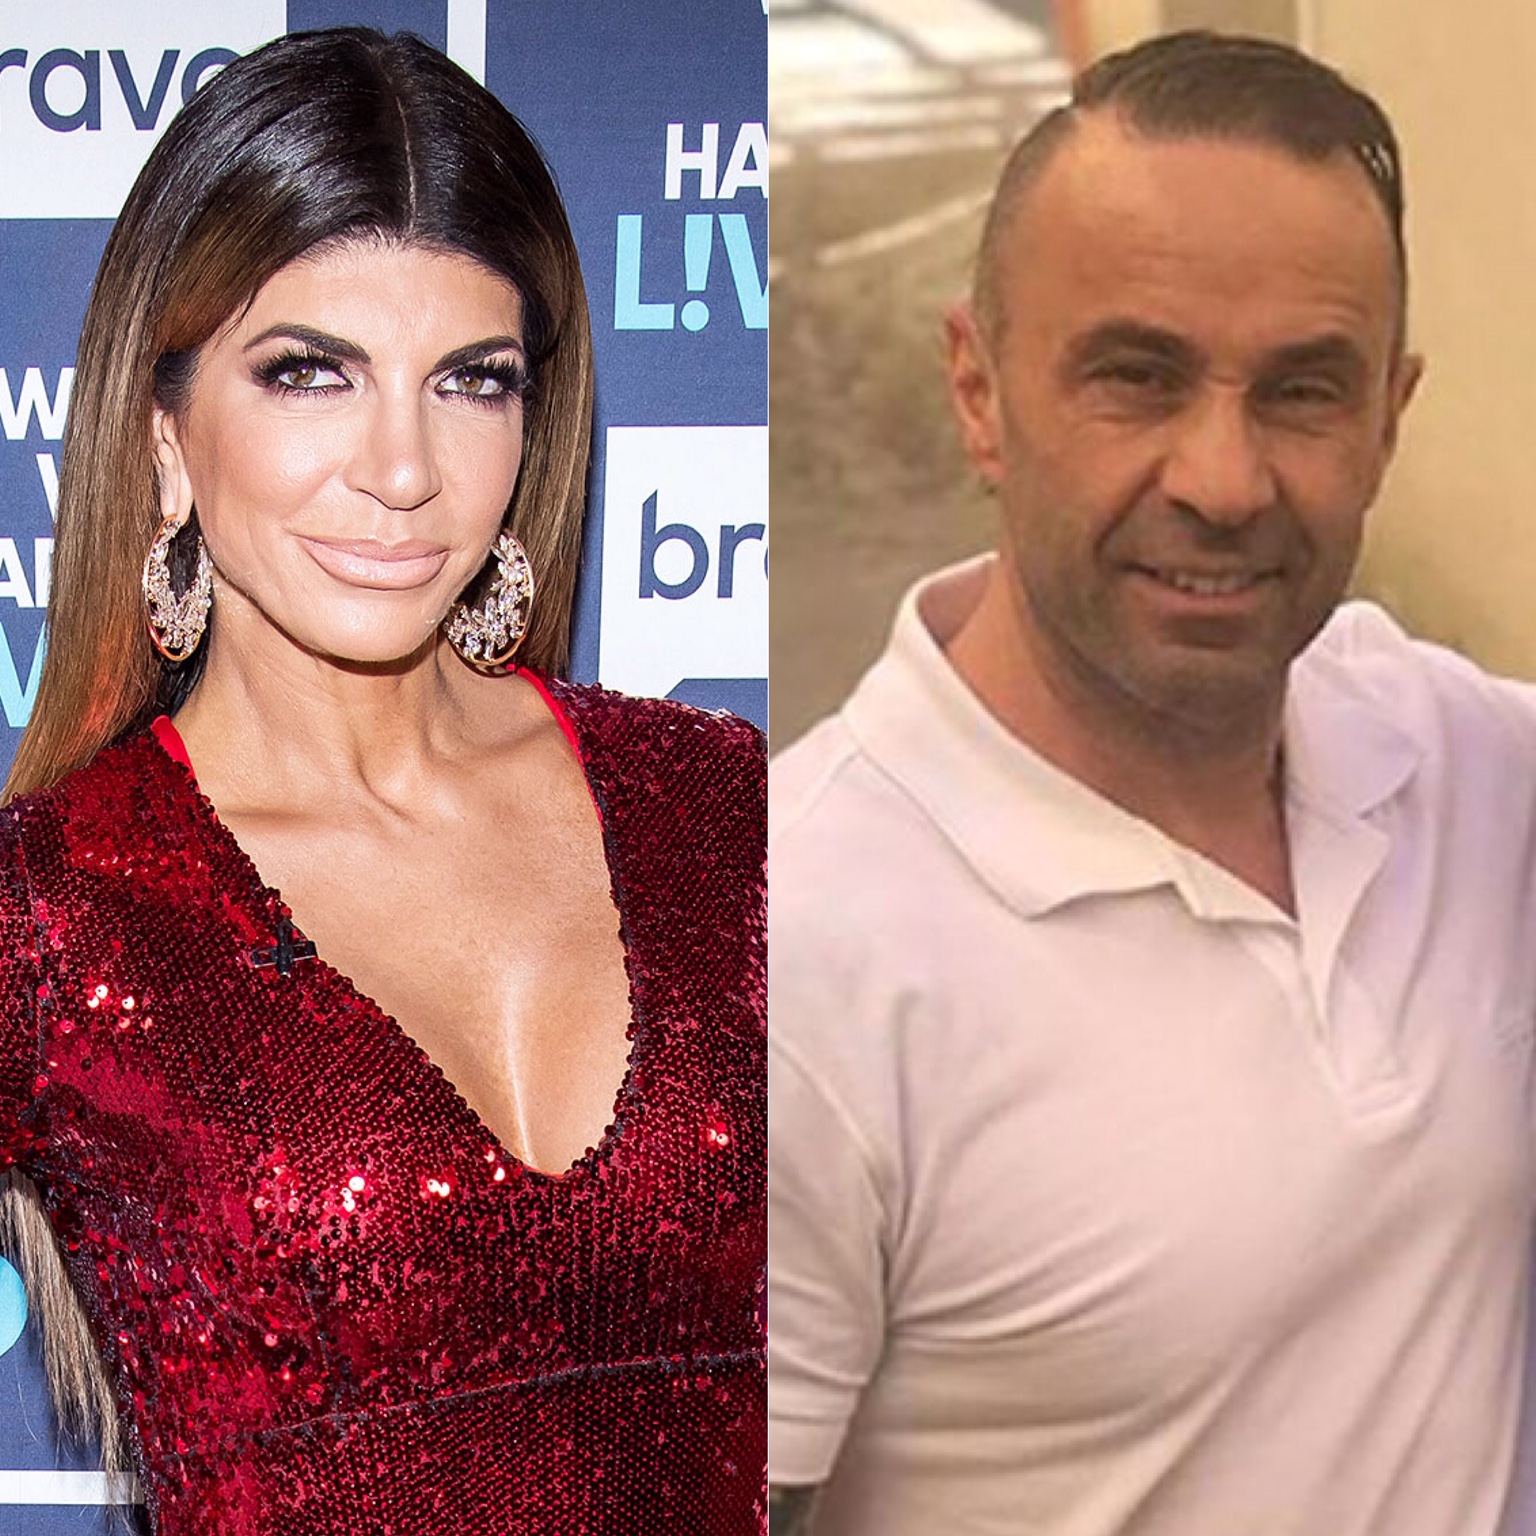 """teresa-giudice-reveals-she-found-joes-secret-phone-with-only-a-womans-number-on-it-heres-what-happened-when-she-confronted-the-mistress"""